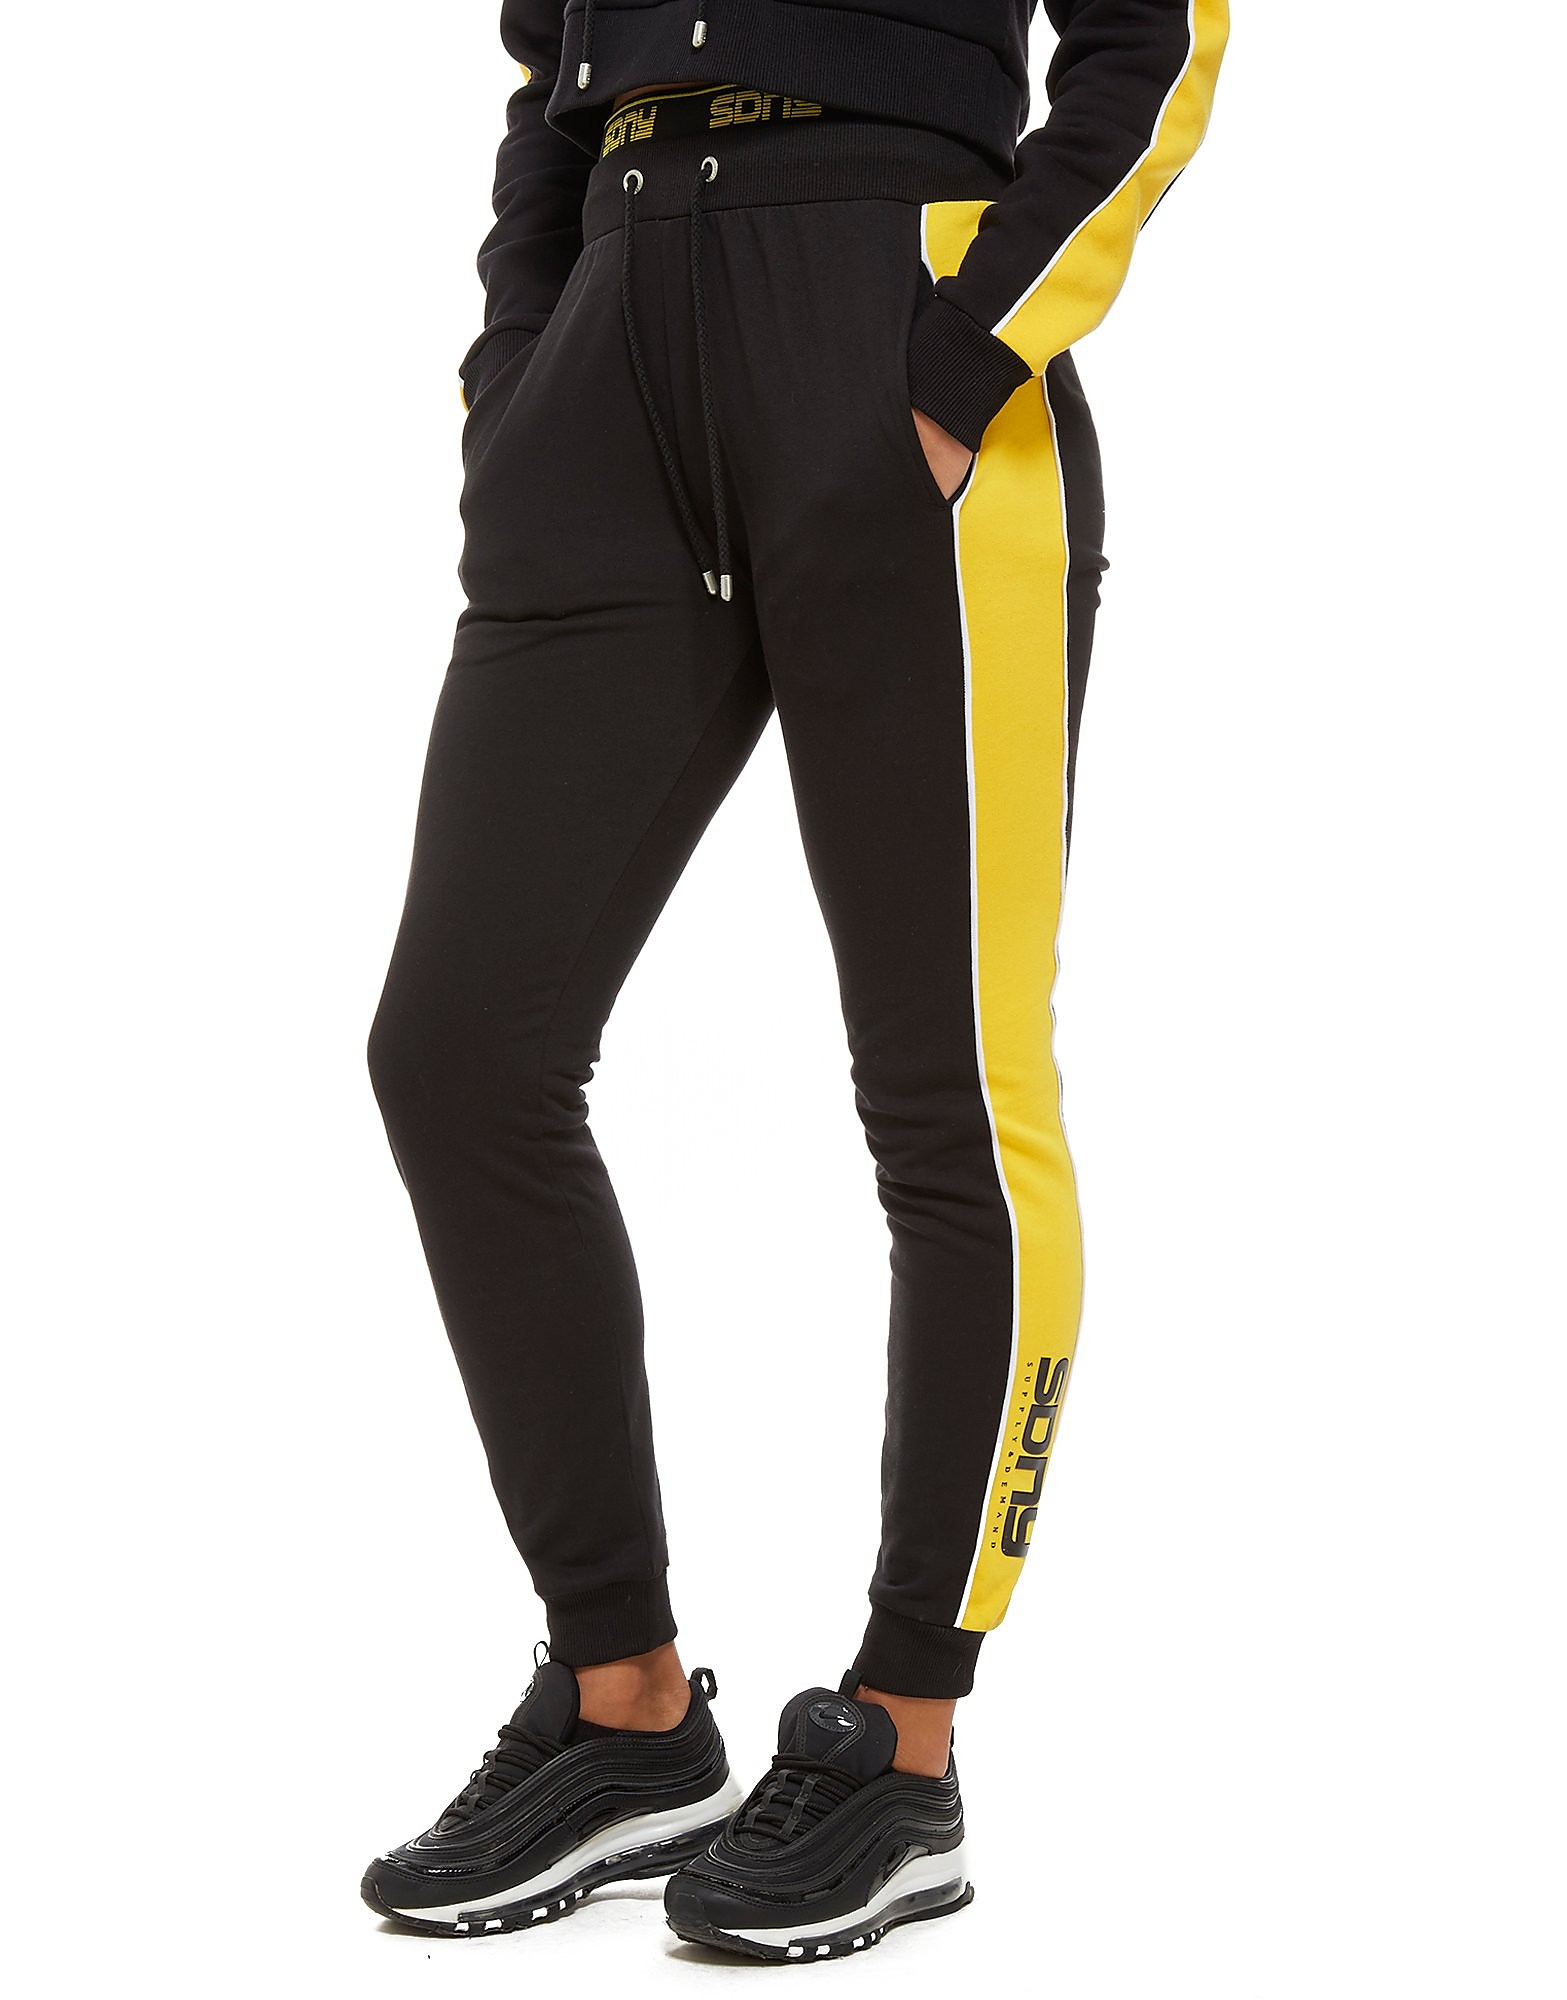 Supply & Demand Piping Panel Joggers - Only at JD - noir/jaune, noir/jaune